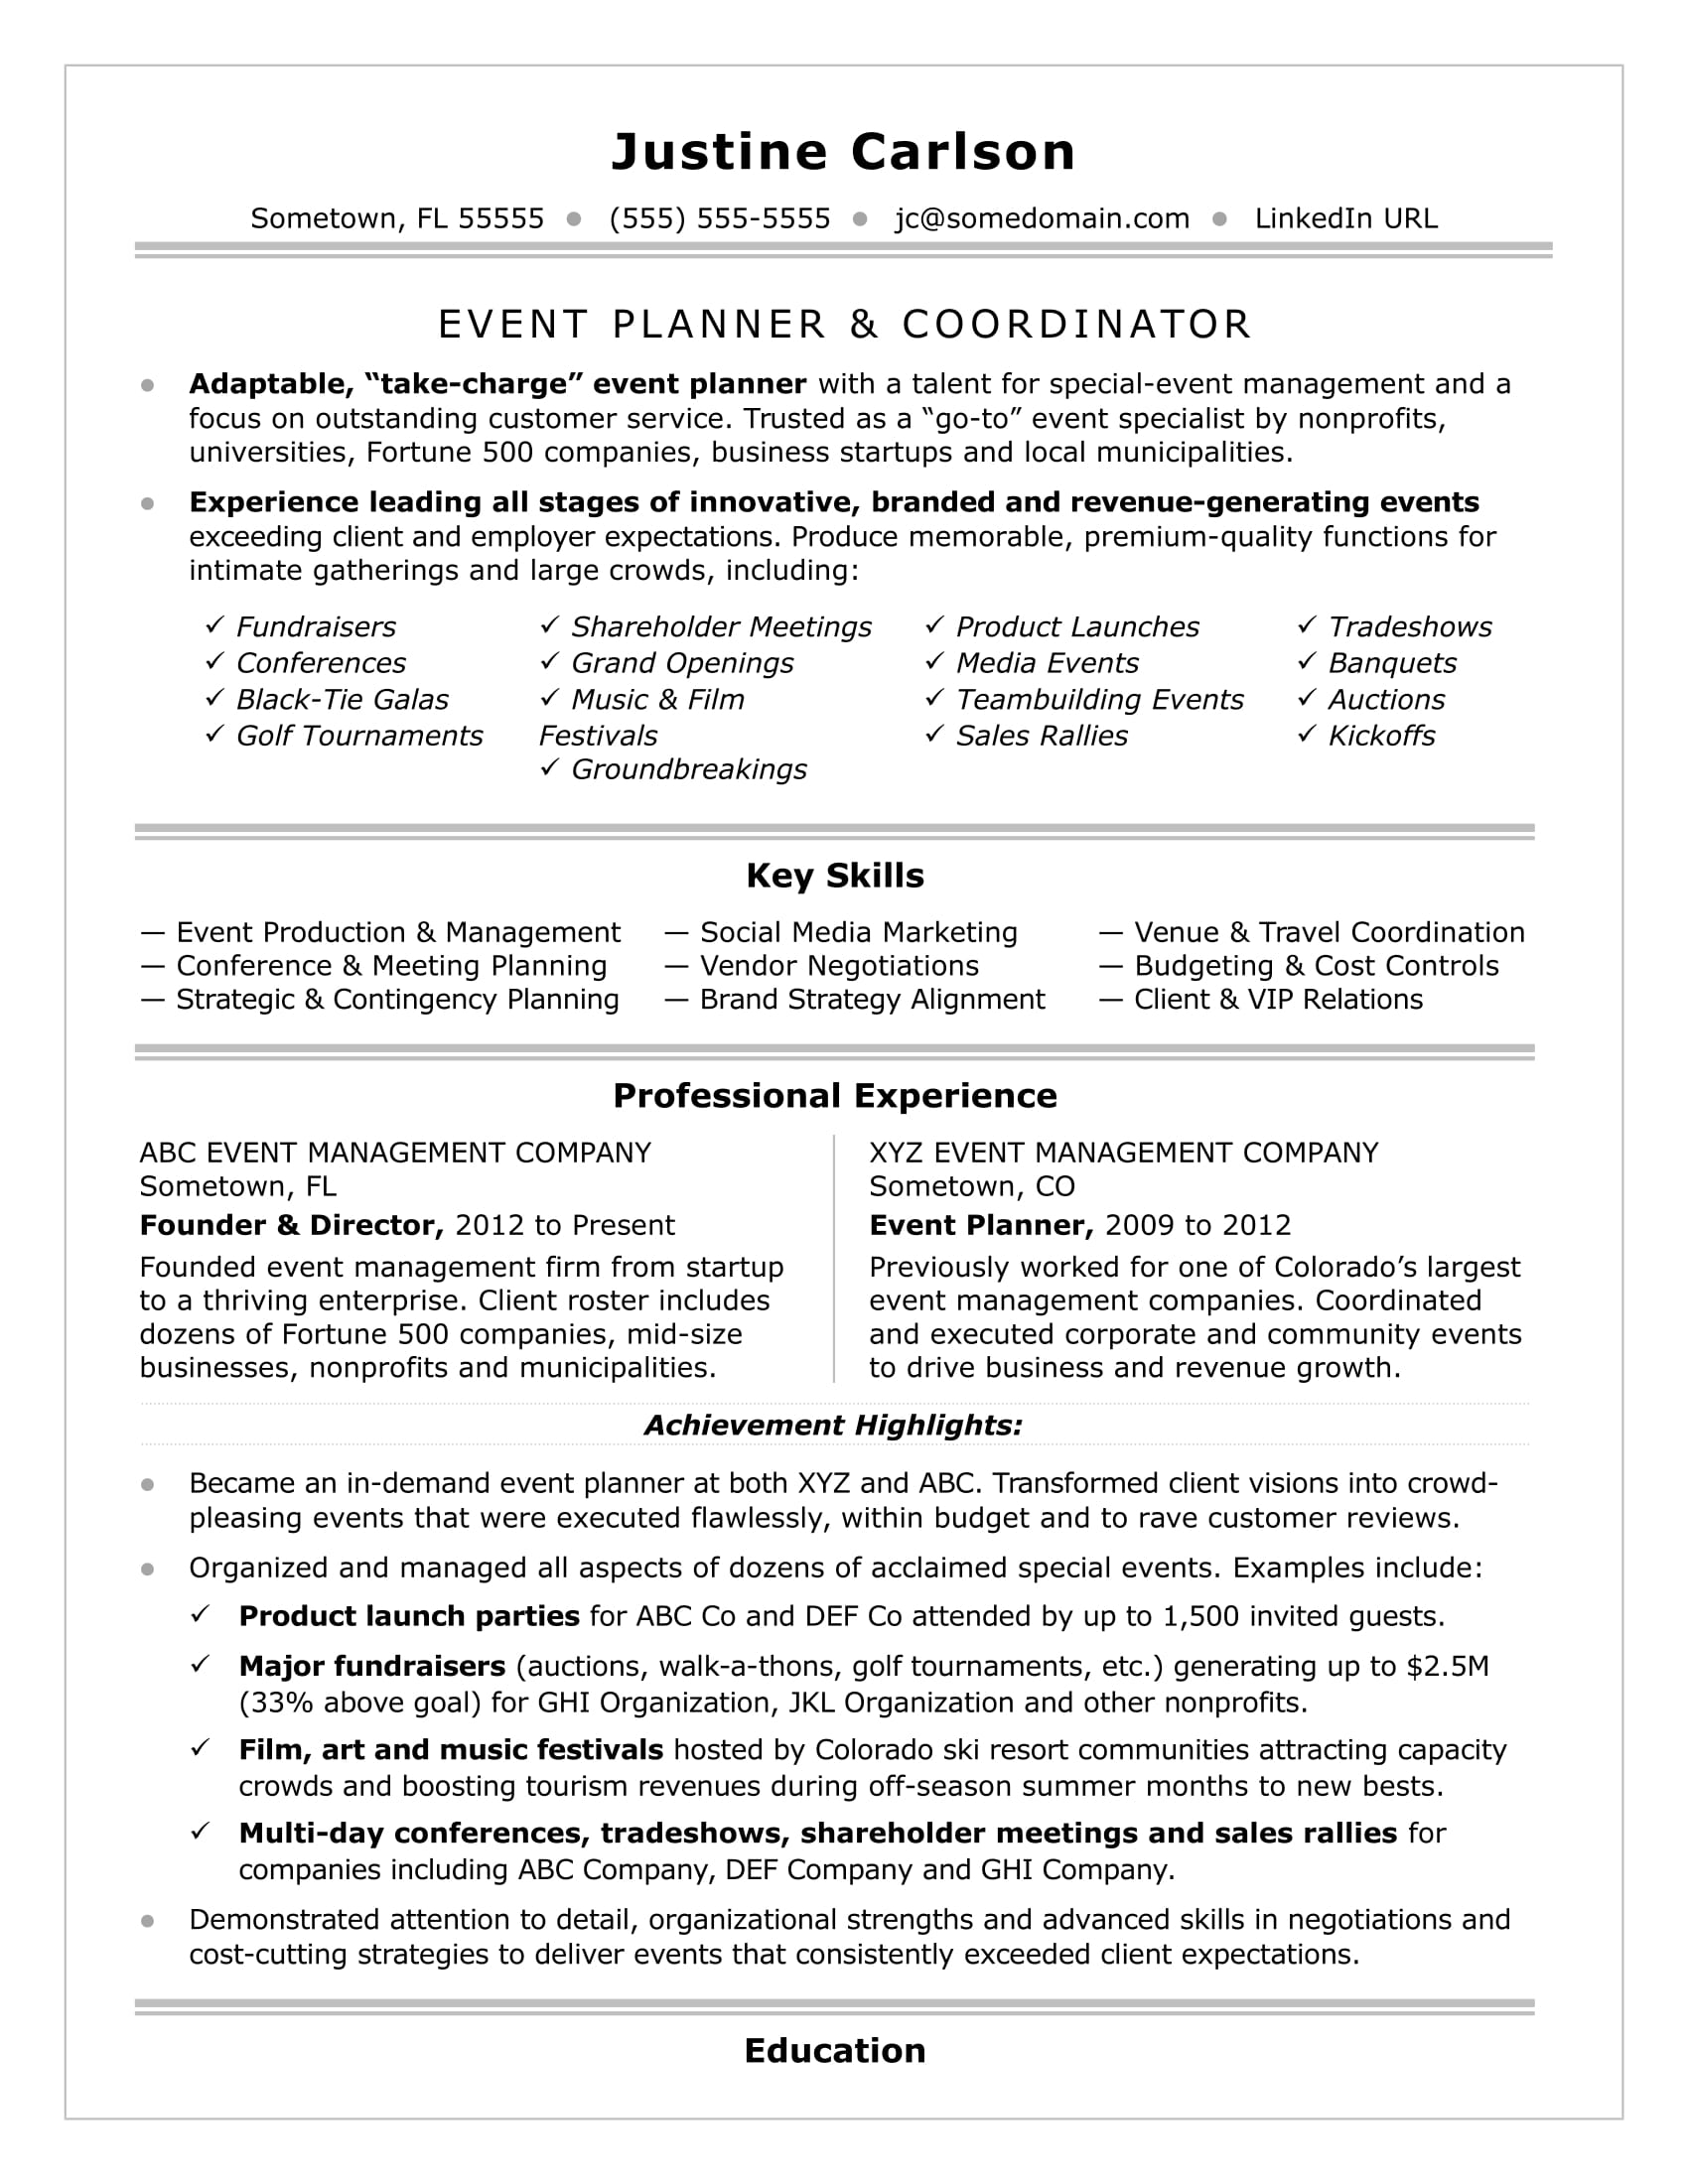 Event Coordinator Resume Sample | Monster.com